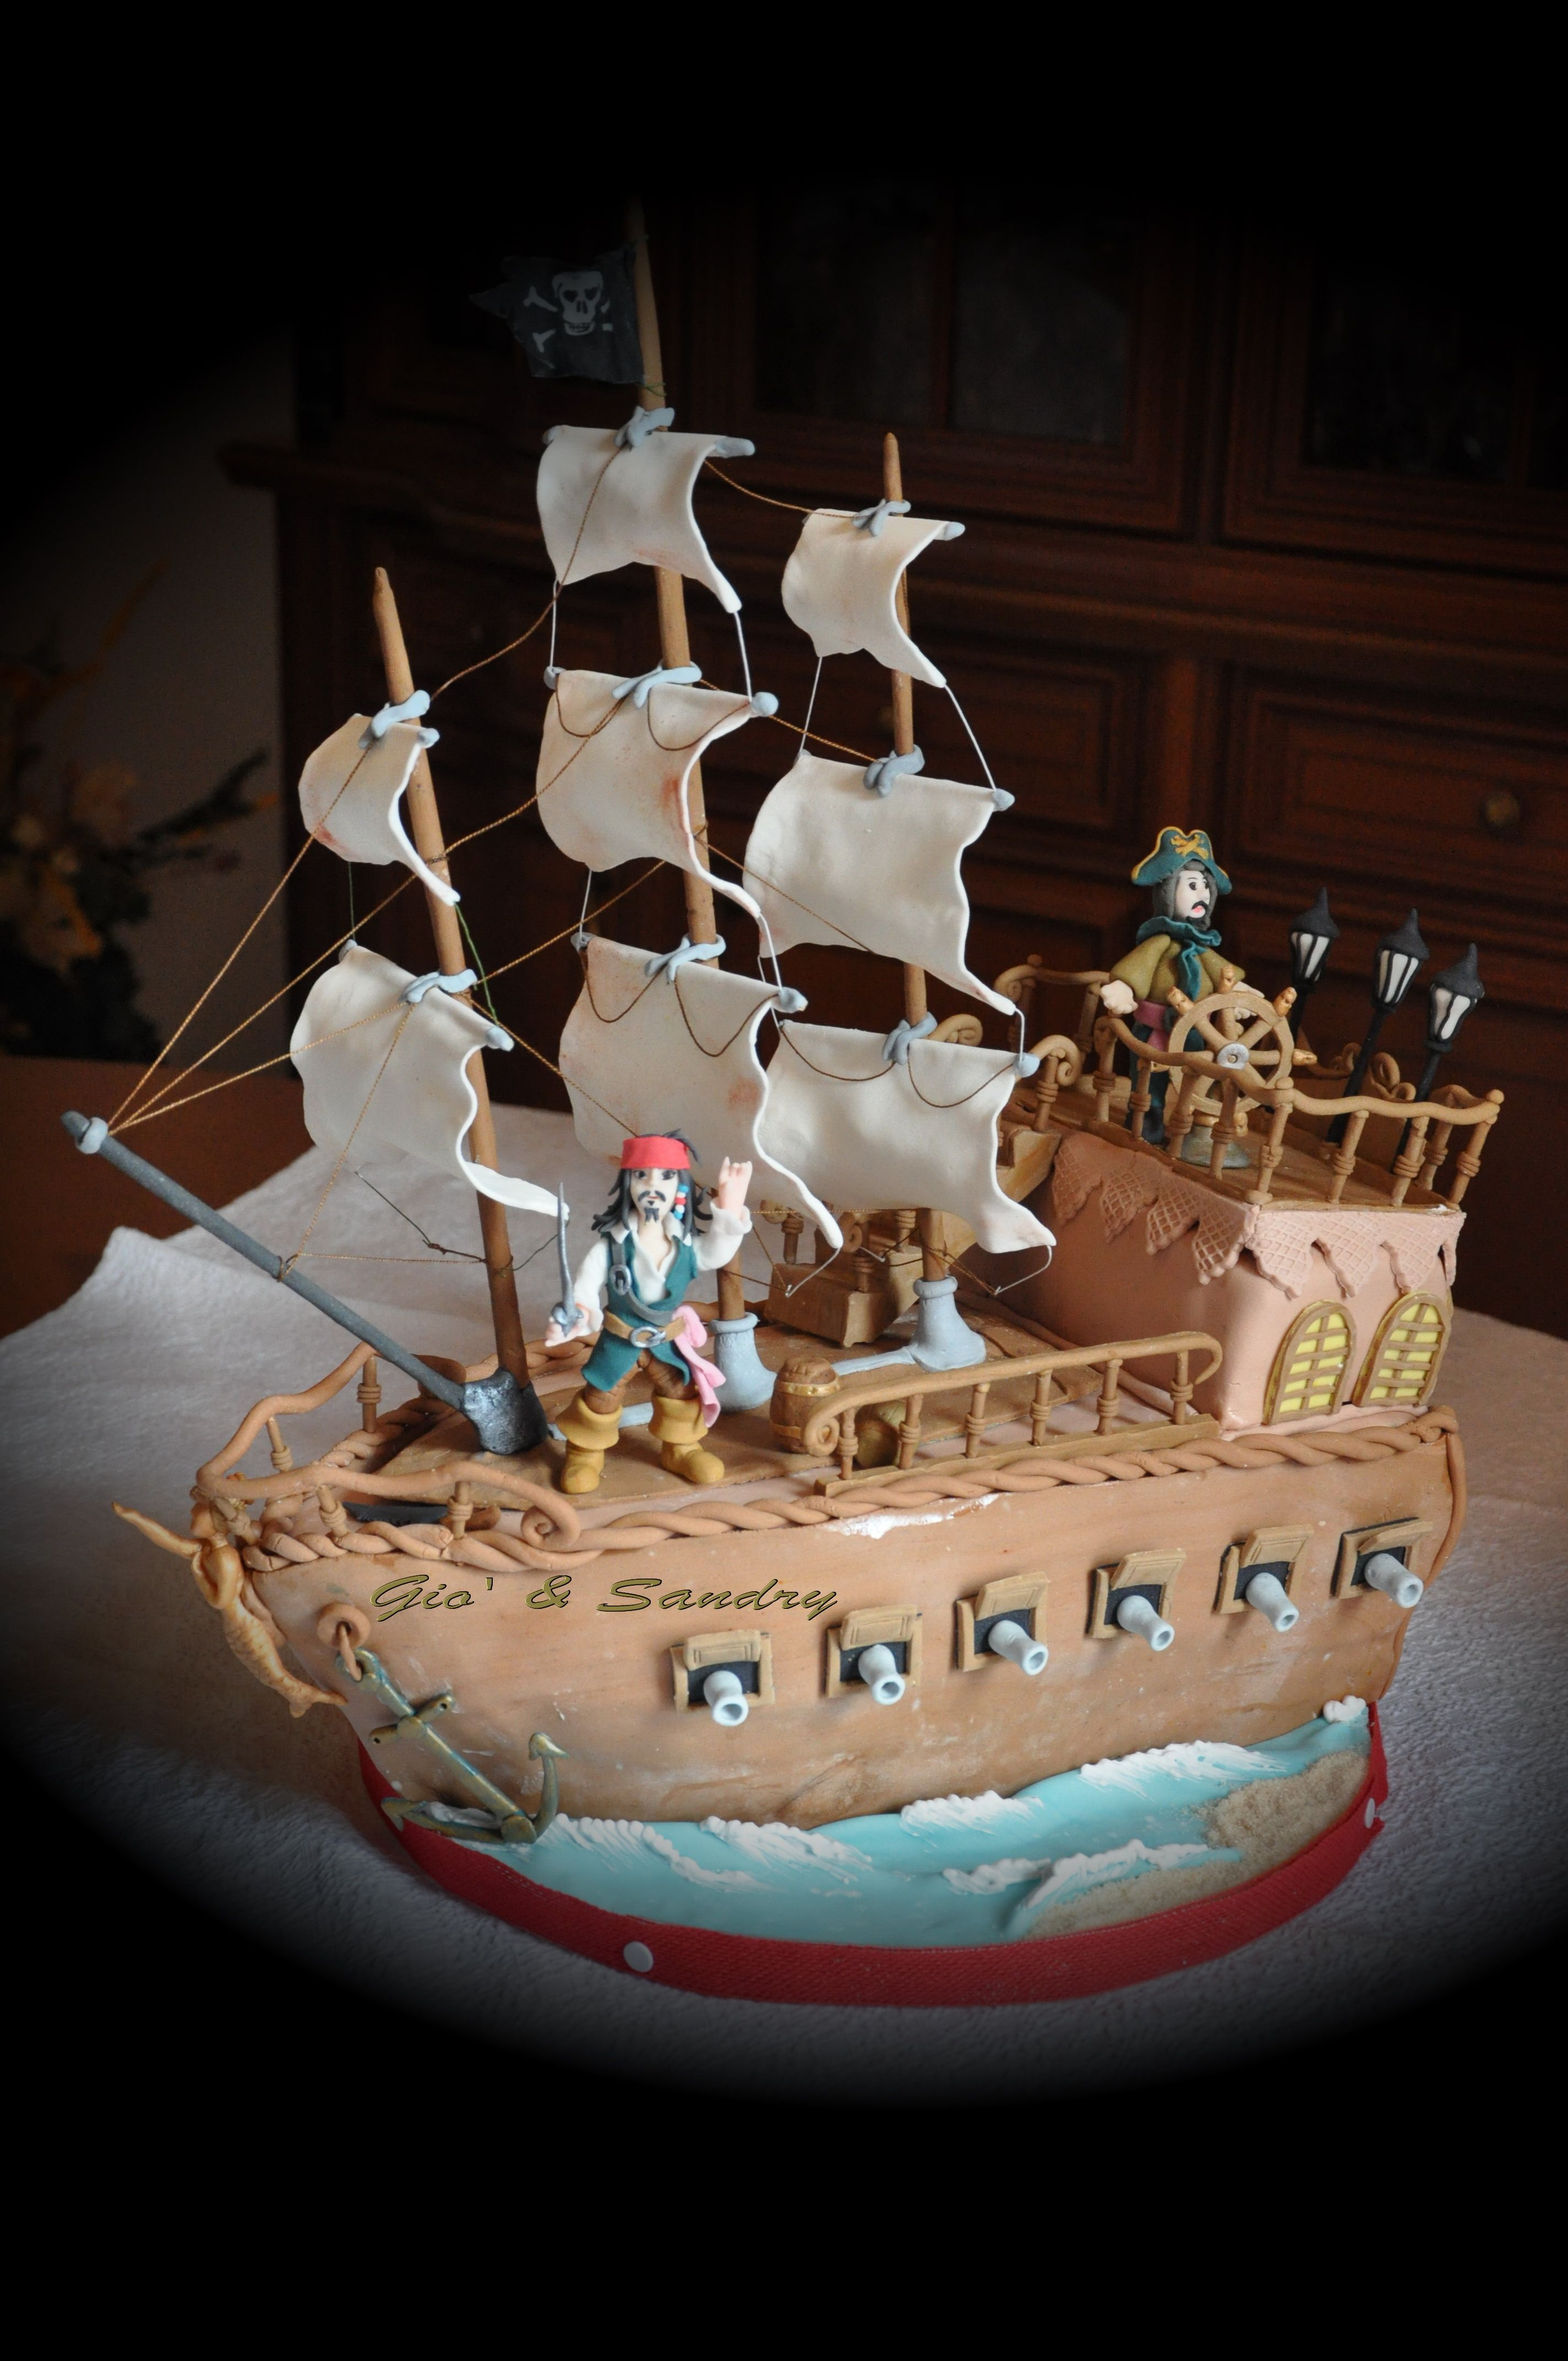 Incredible Black Pearl pirate ship cake tweeted by @cakecentral ...